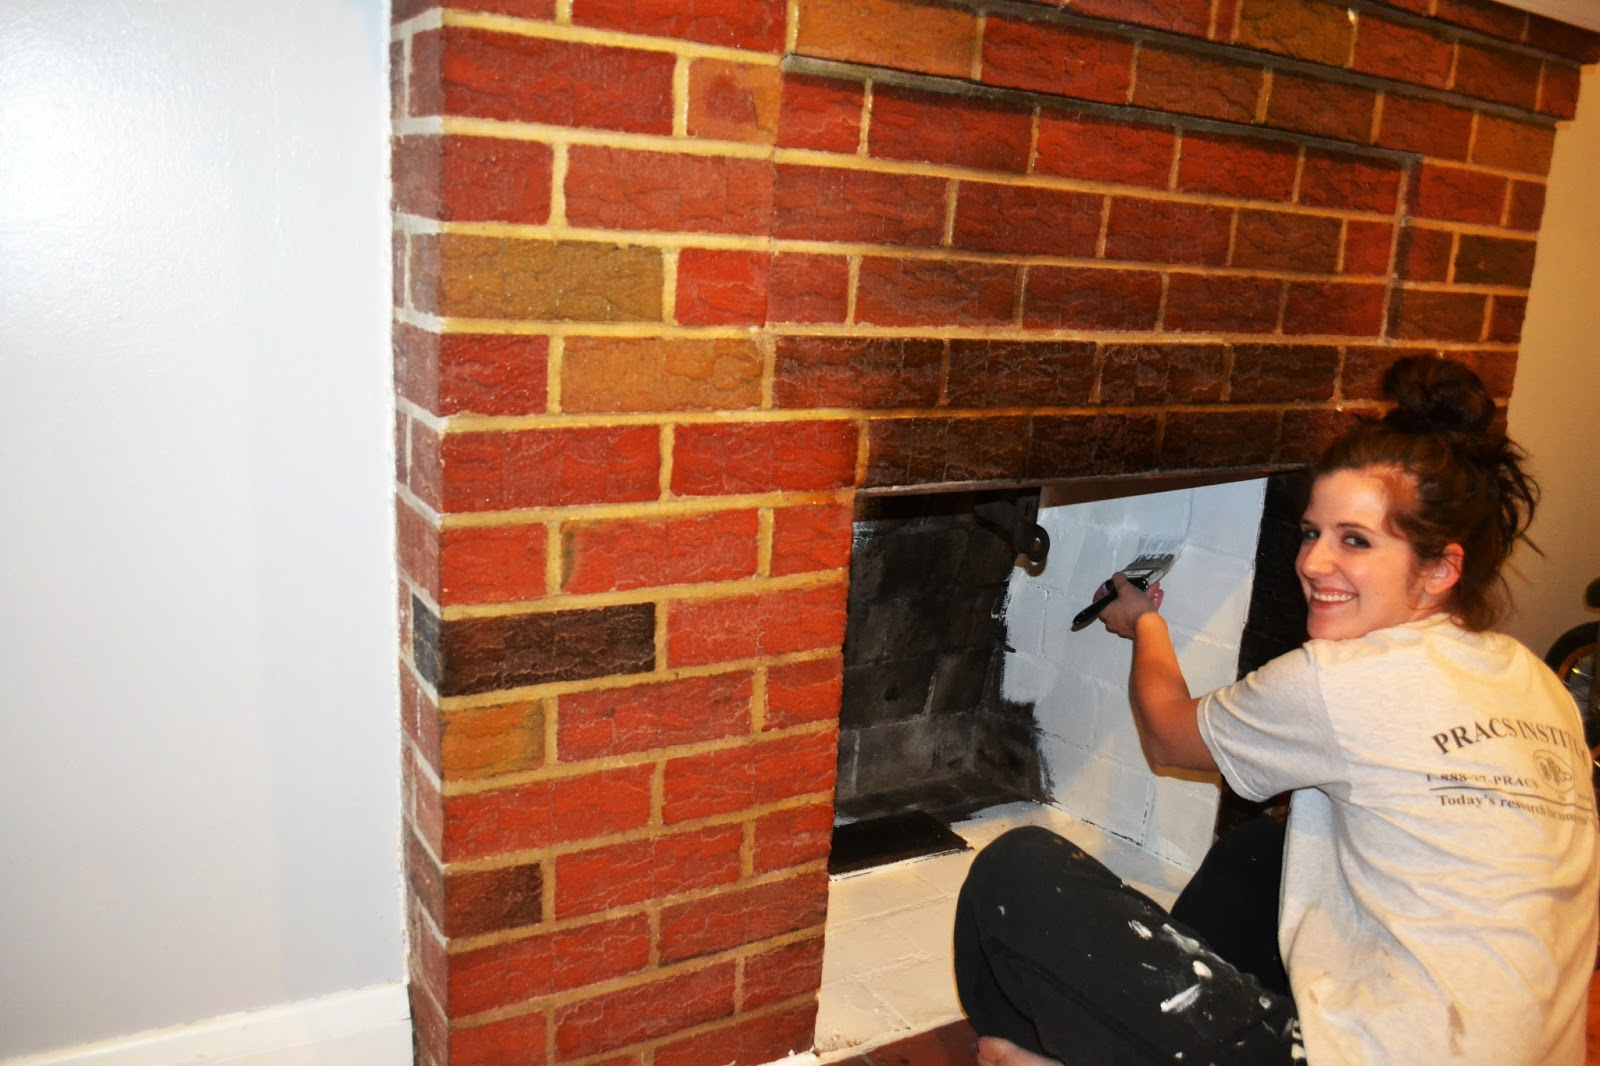 Paint For Inside Of Fireplace Project Stayathome Mommy Bye Bye Ugly Red Brick Fireplace